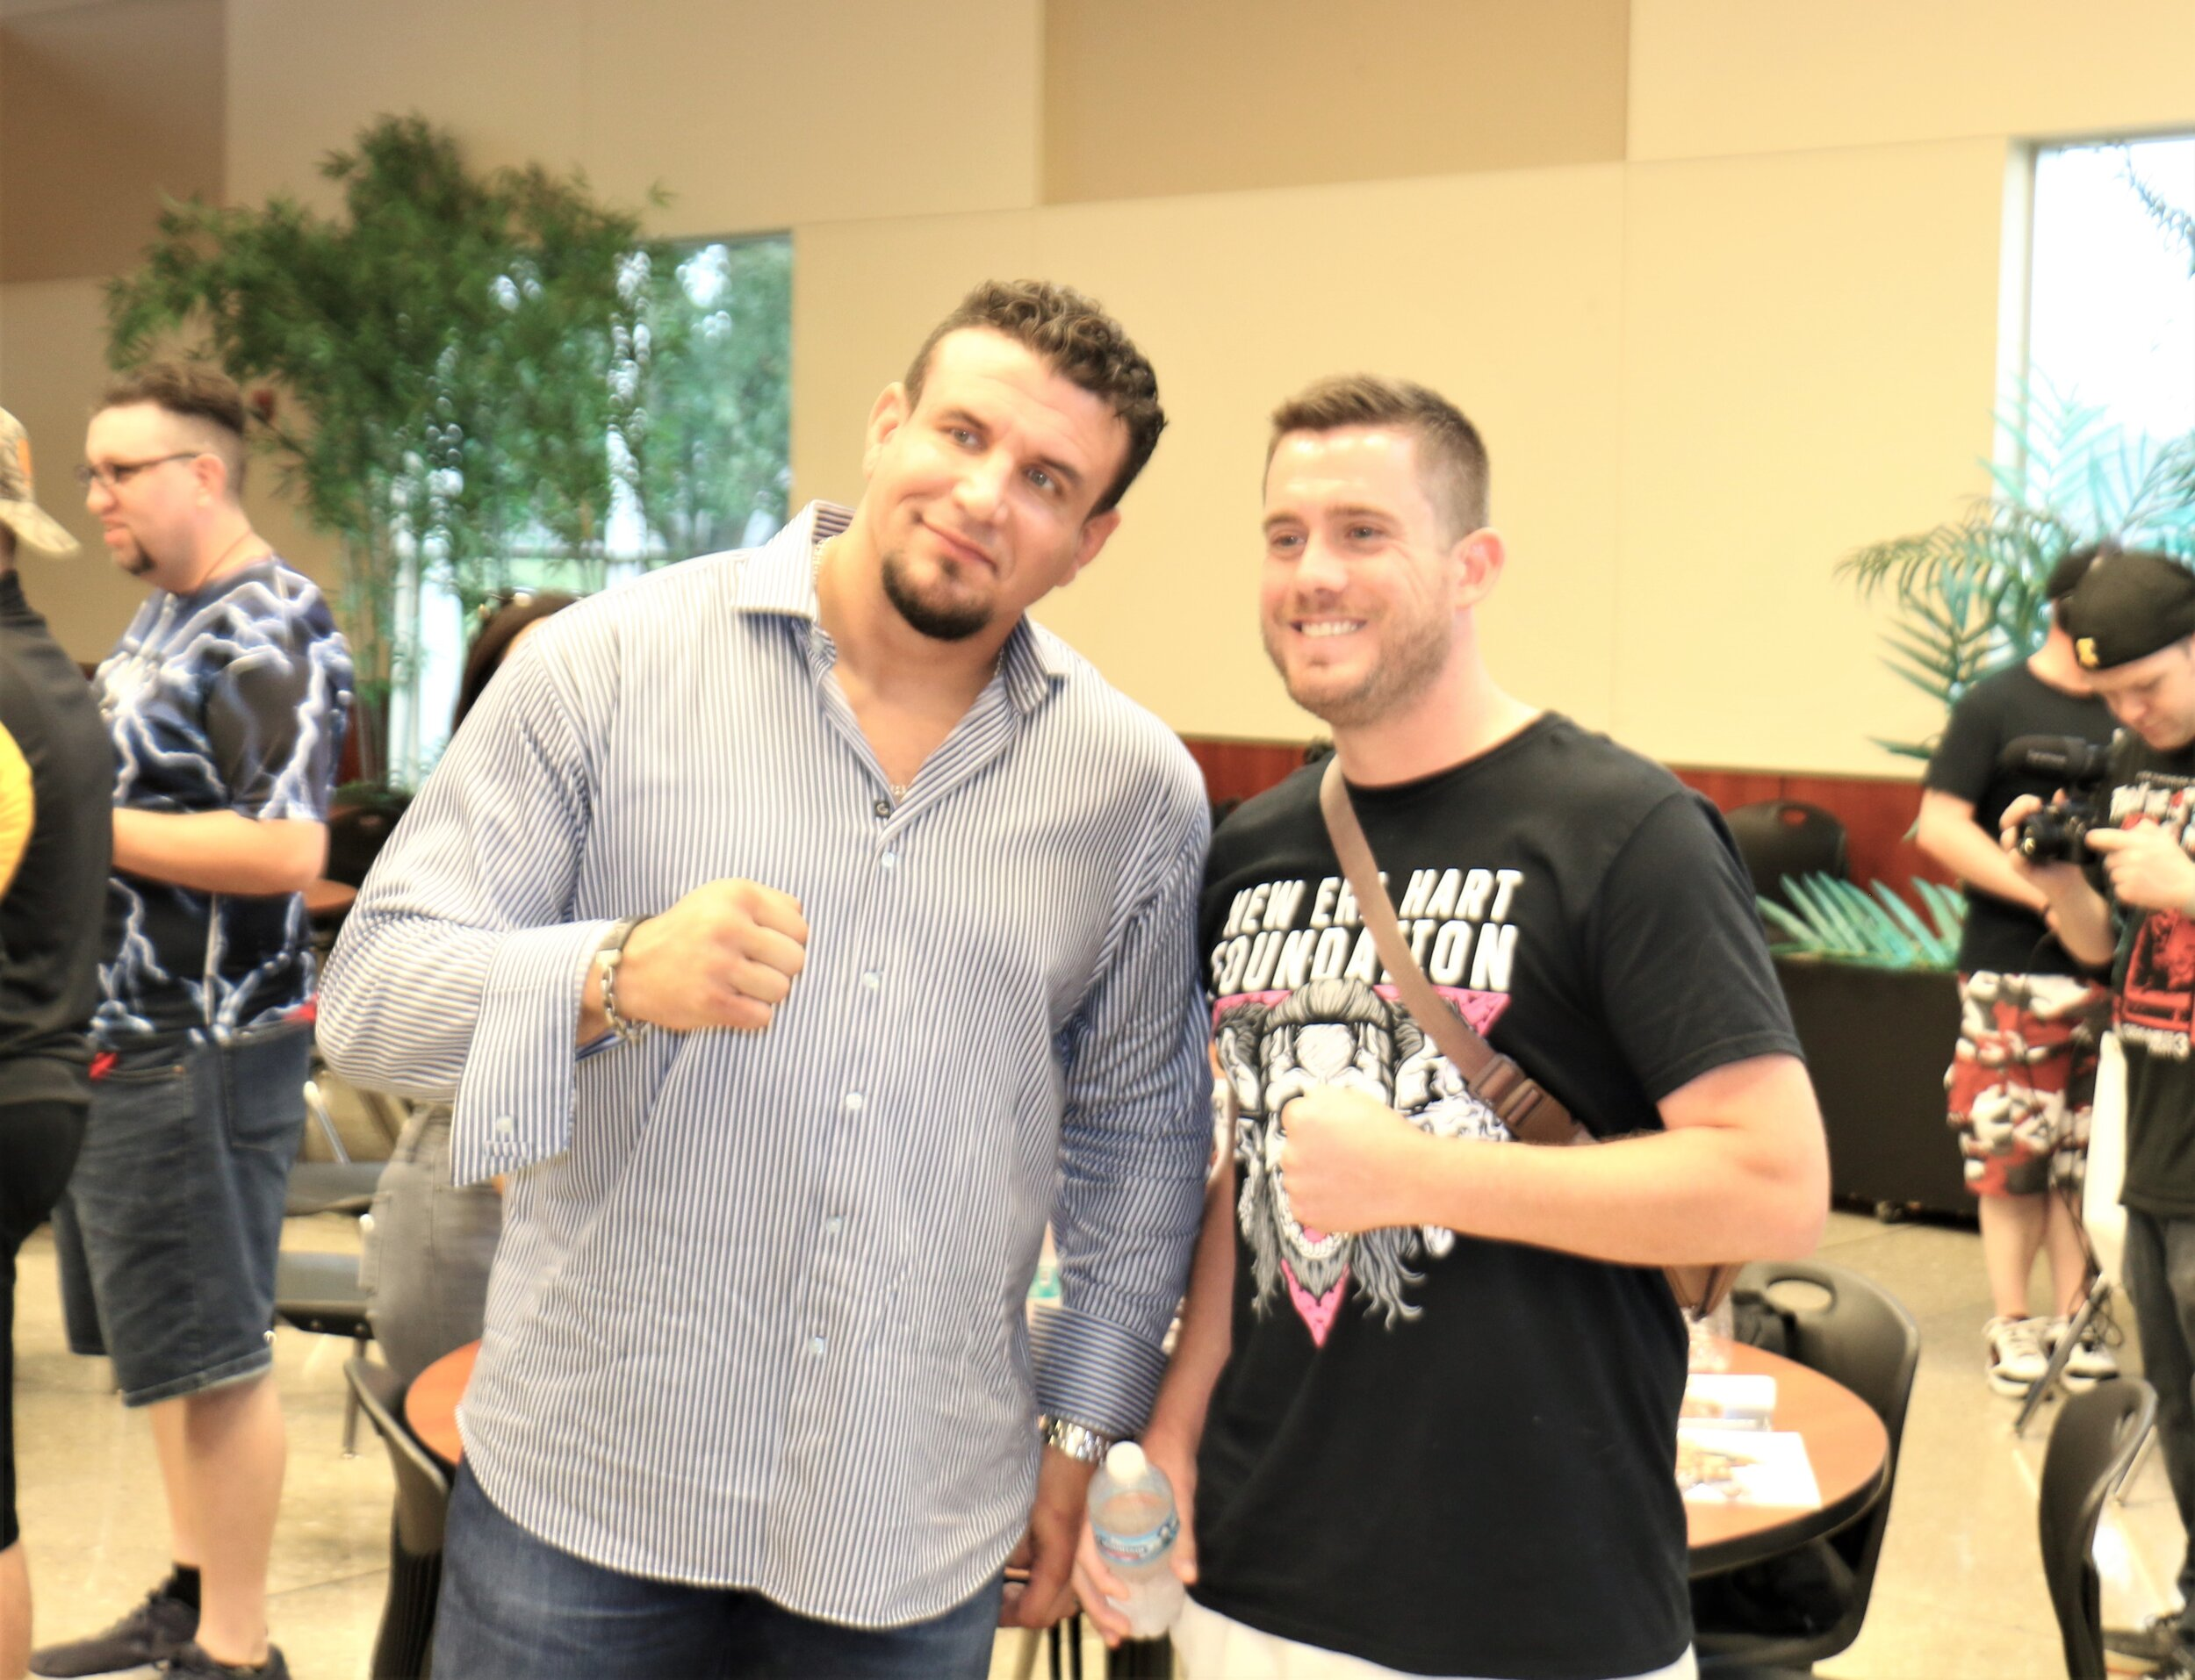 UFC heavyweight legend Frank Mir, left, poses with a fan at the Warrior Wrestling 6 VIP Fan Fest.